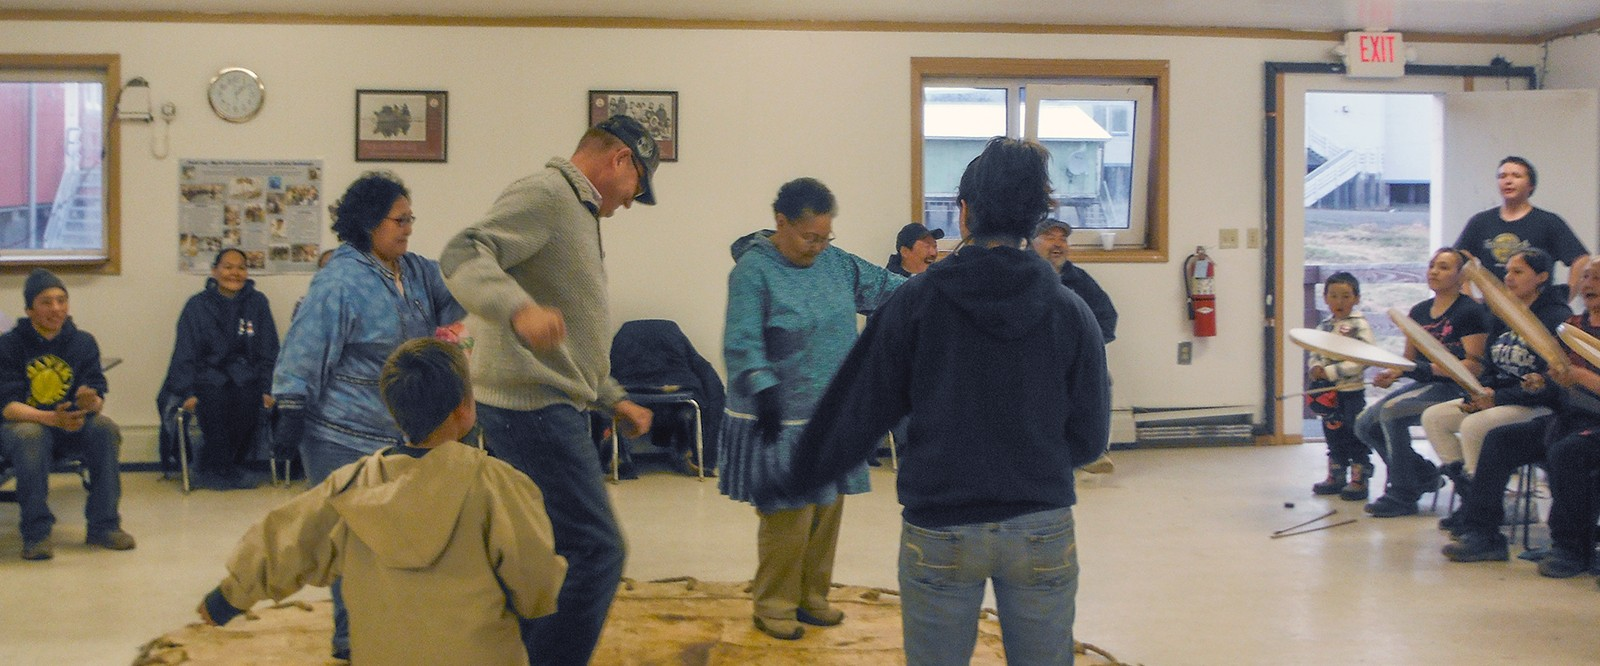 small group of people and spectators in a large room practicing a dance